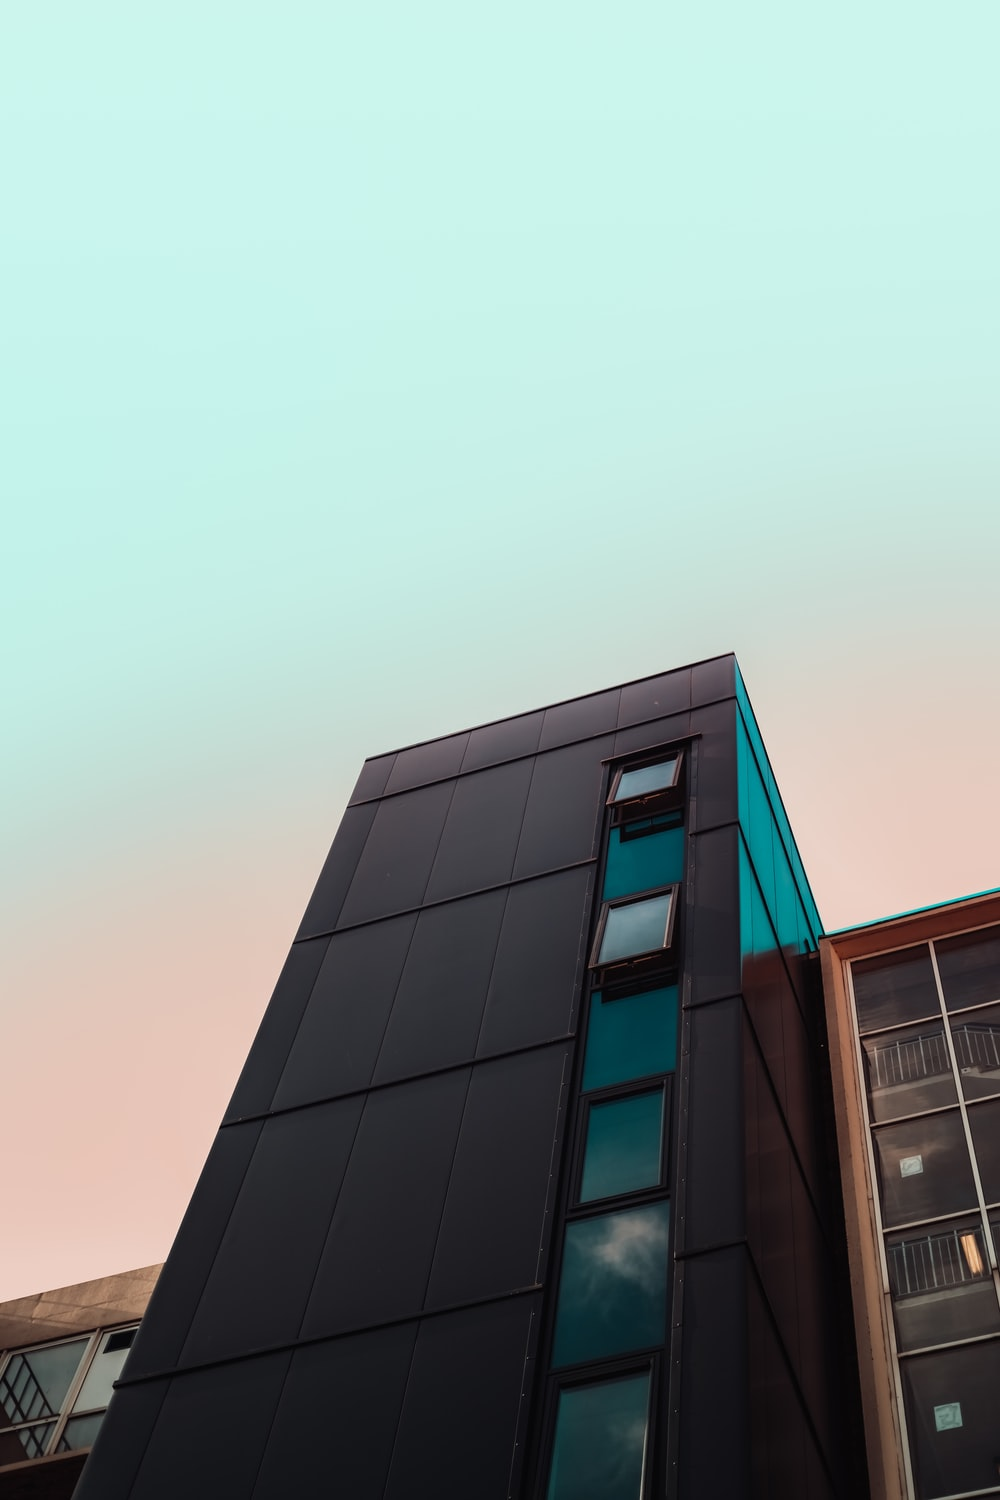 gray and black cement building